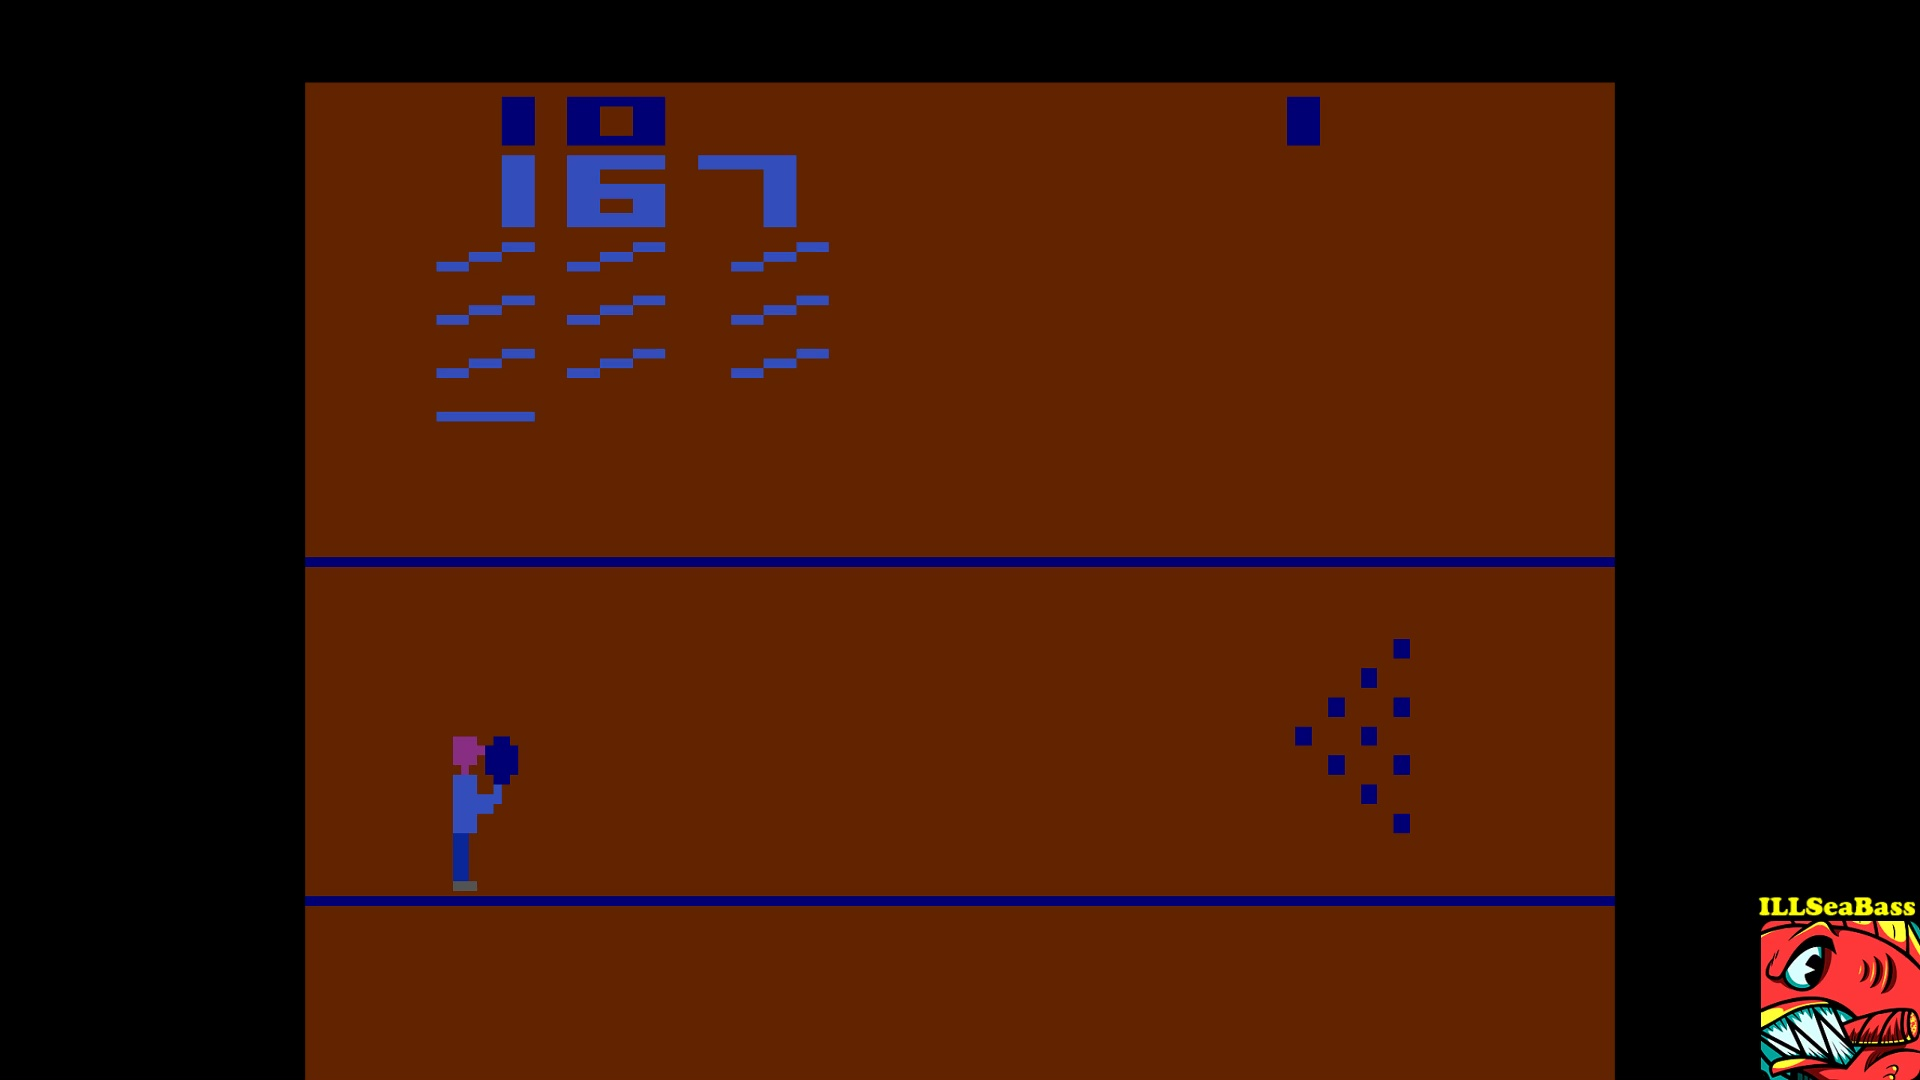 ILLSeaBass: Bowling: Game 5 (Atari 2600 Emulated Novice/B Mode) 167 points on 2017-10-26 20:22:21